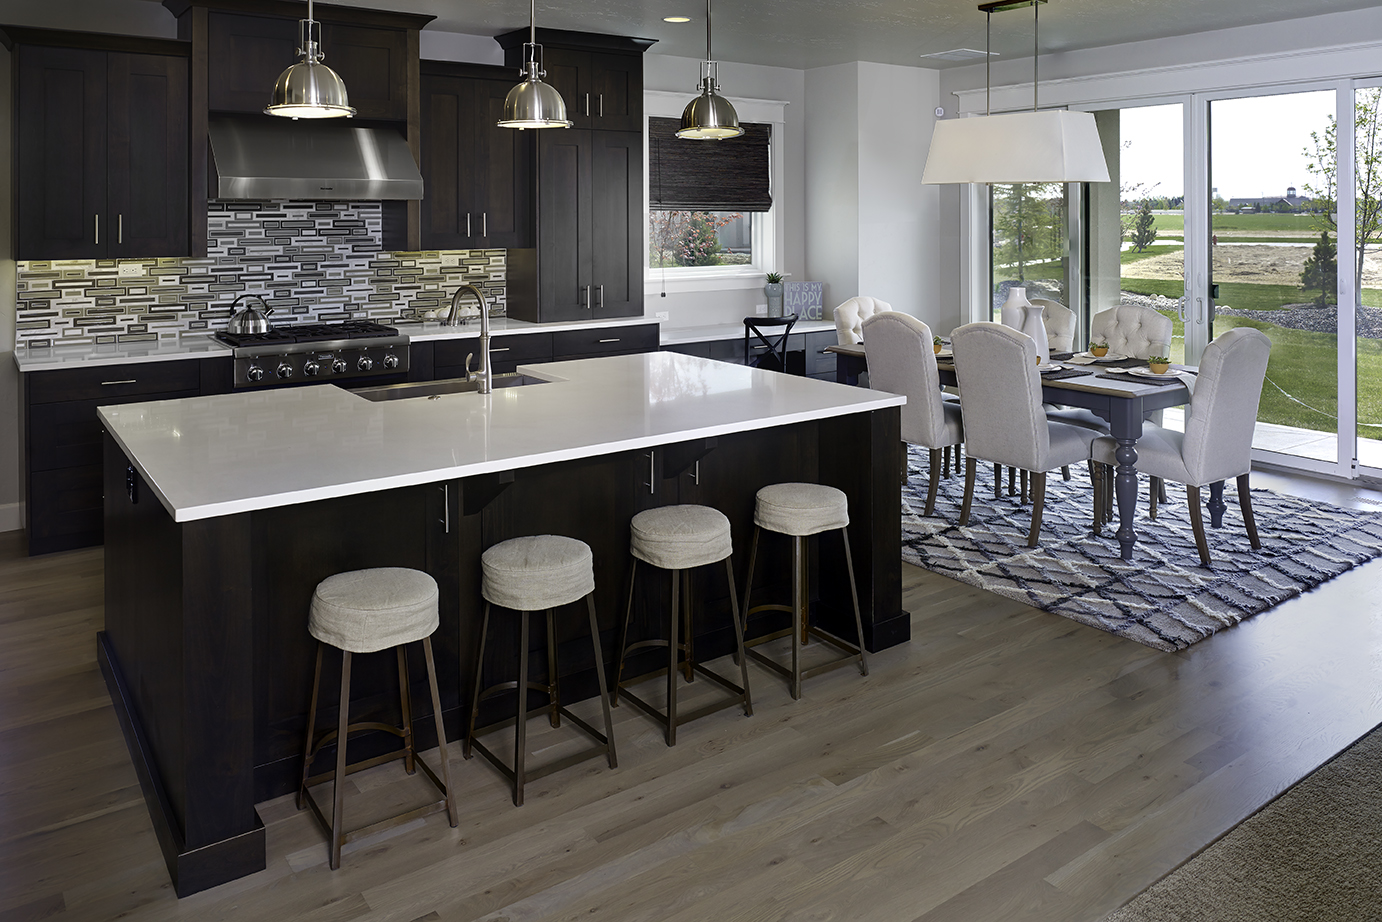 Sunny Afternoon kitchen and dining room.jpg